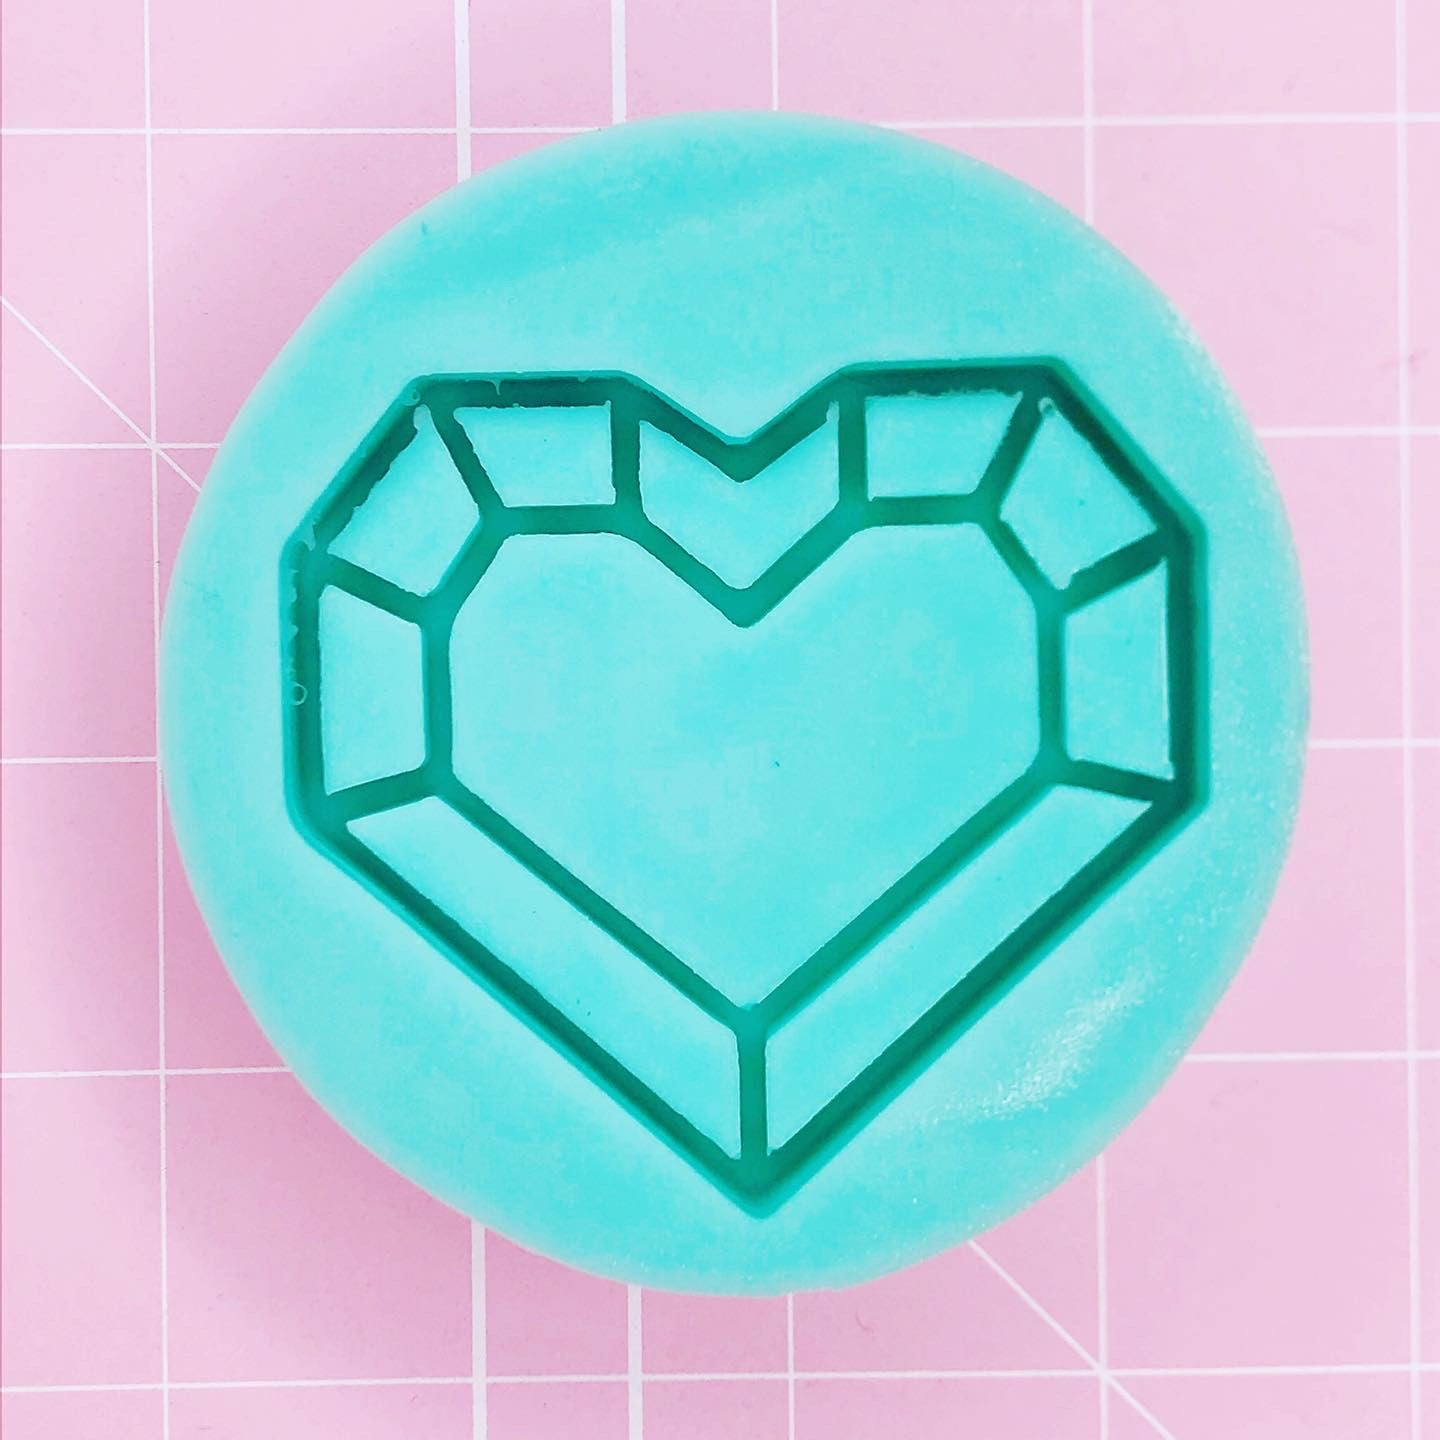 Round Mold - Geo / Stained Glass Heart (Backed Shaker) - Chala Atelier & Supplies